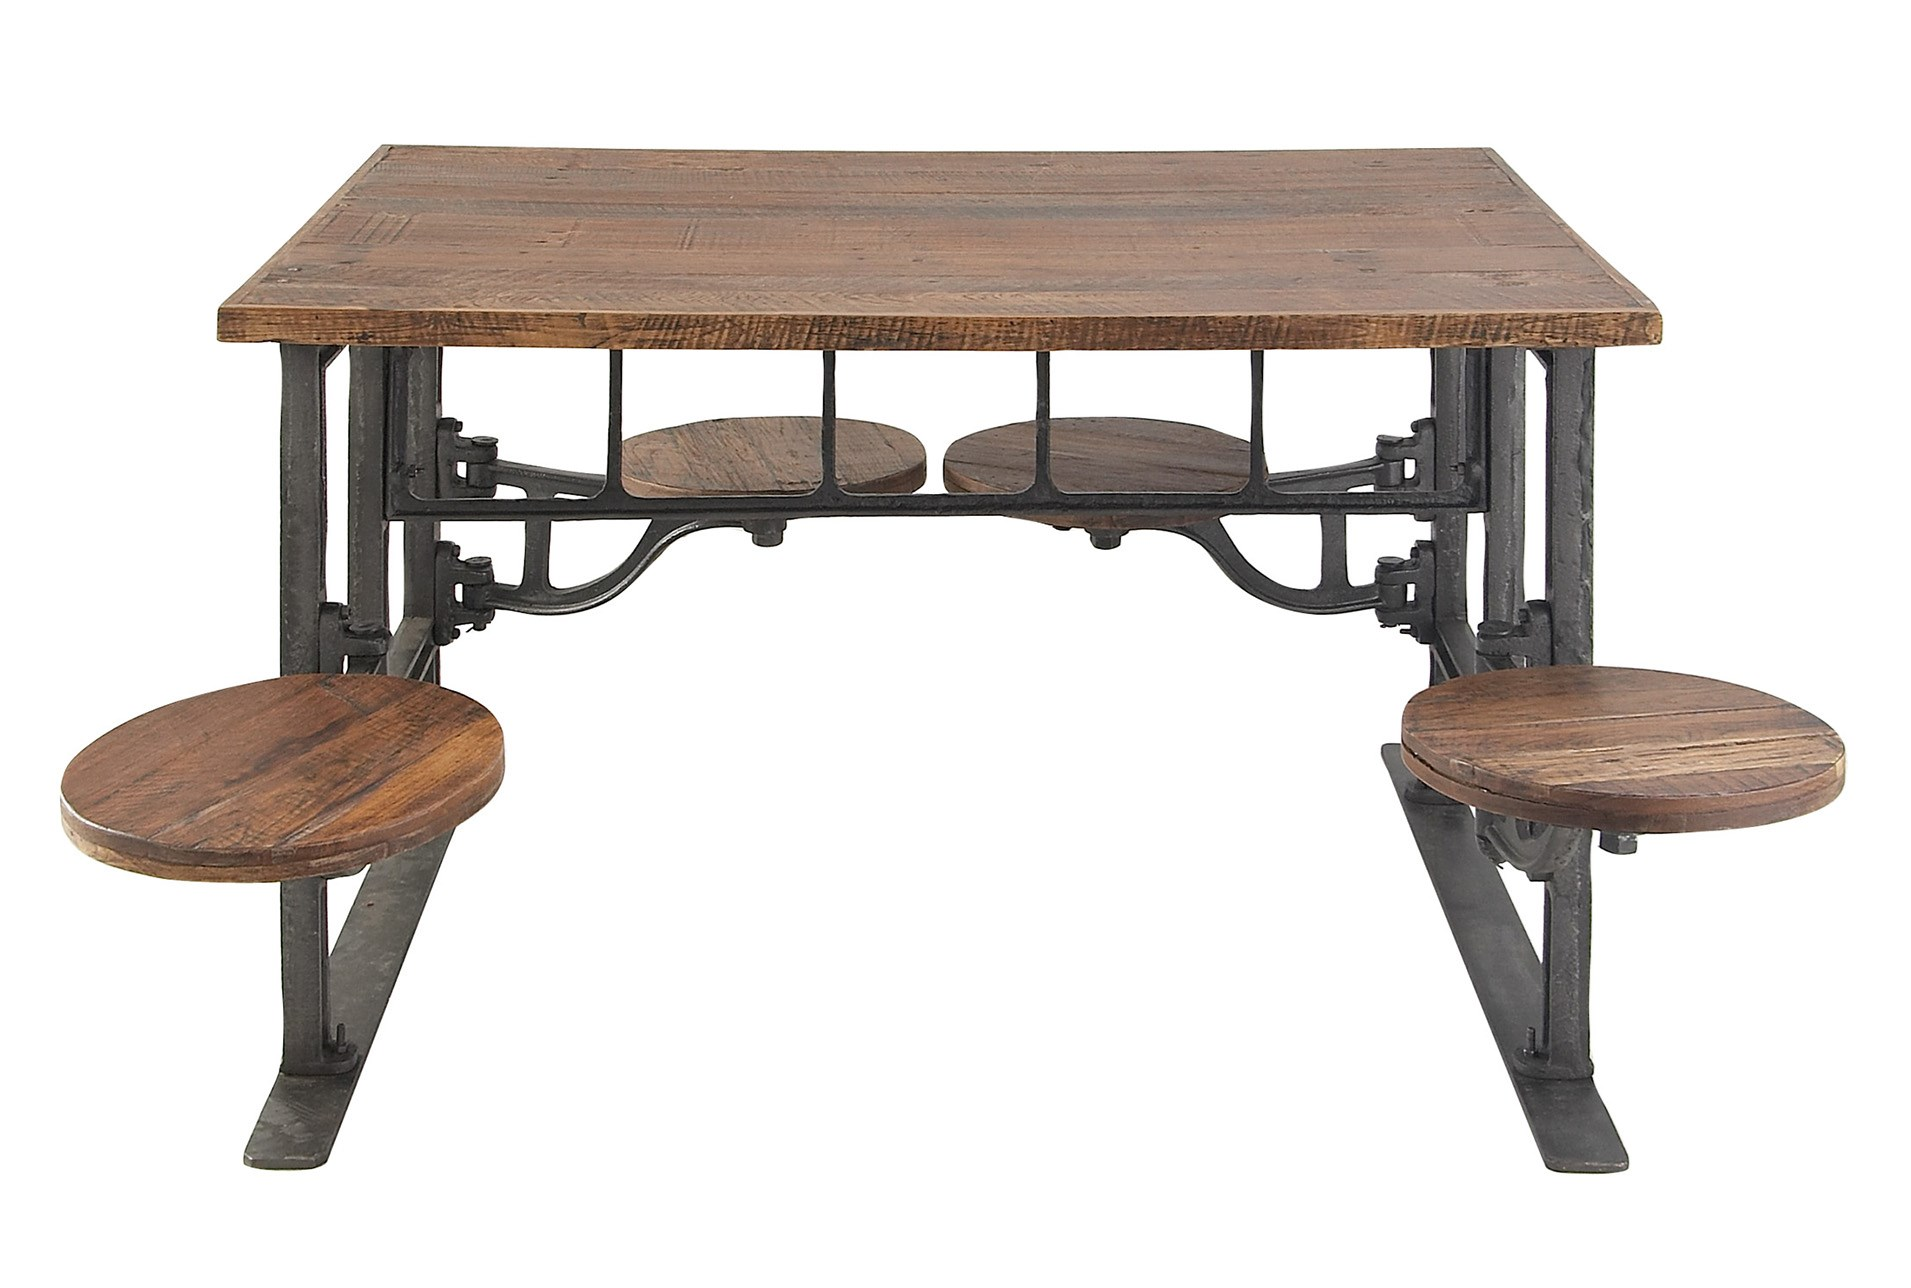 sports shoes f982d 099b4 Teak Metal Dining Table W/Swivel Stools